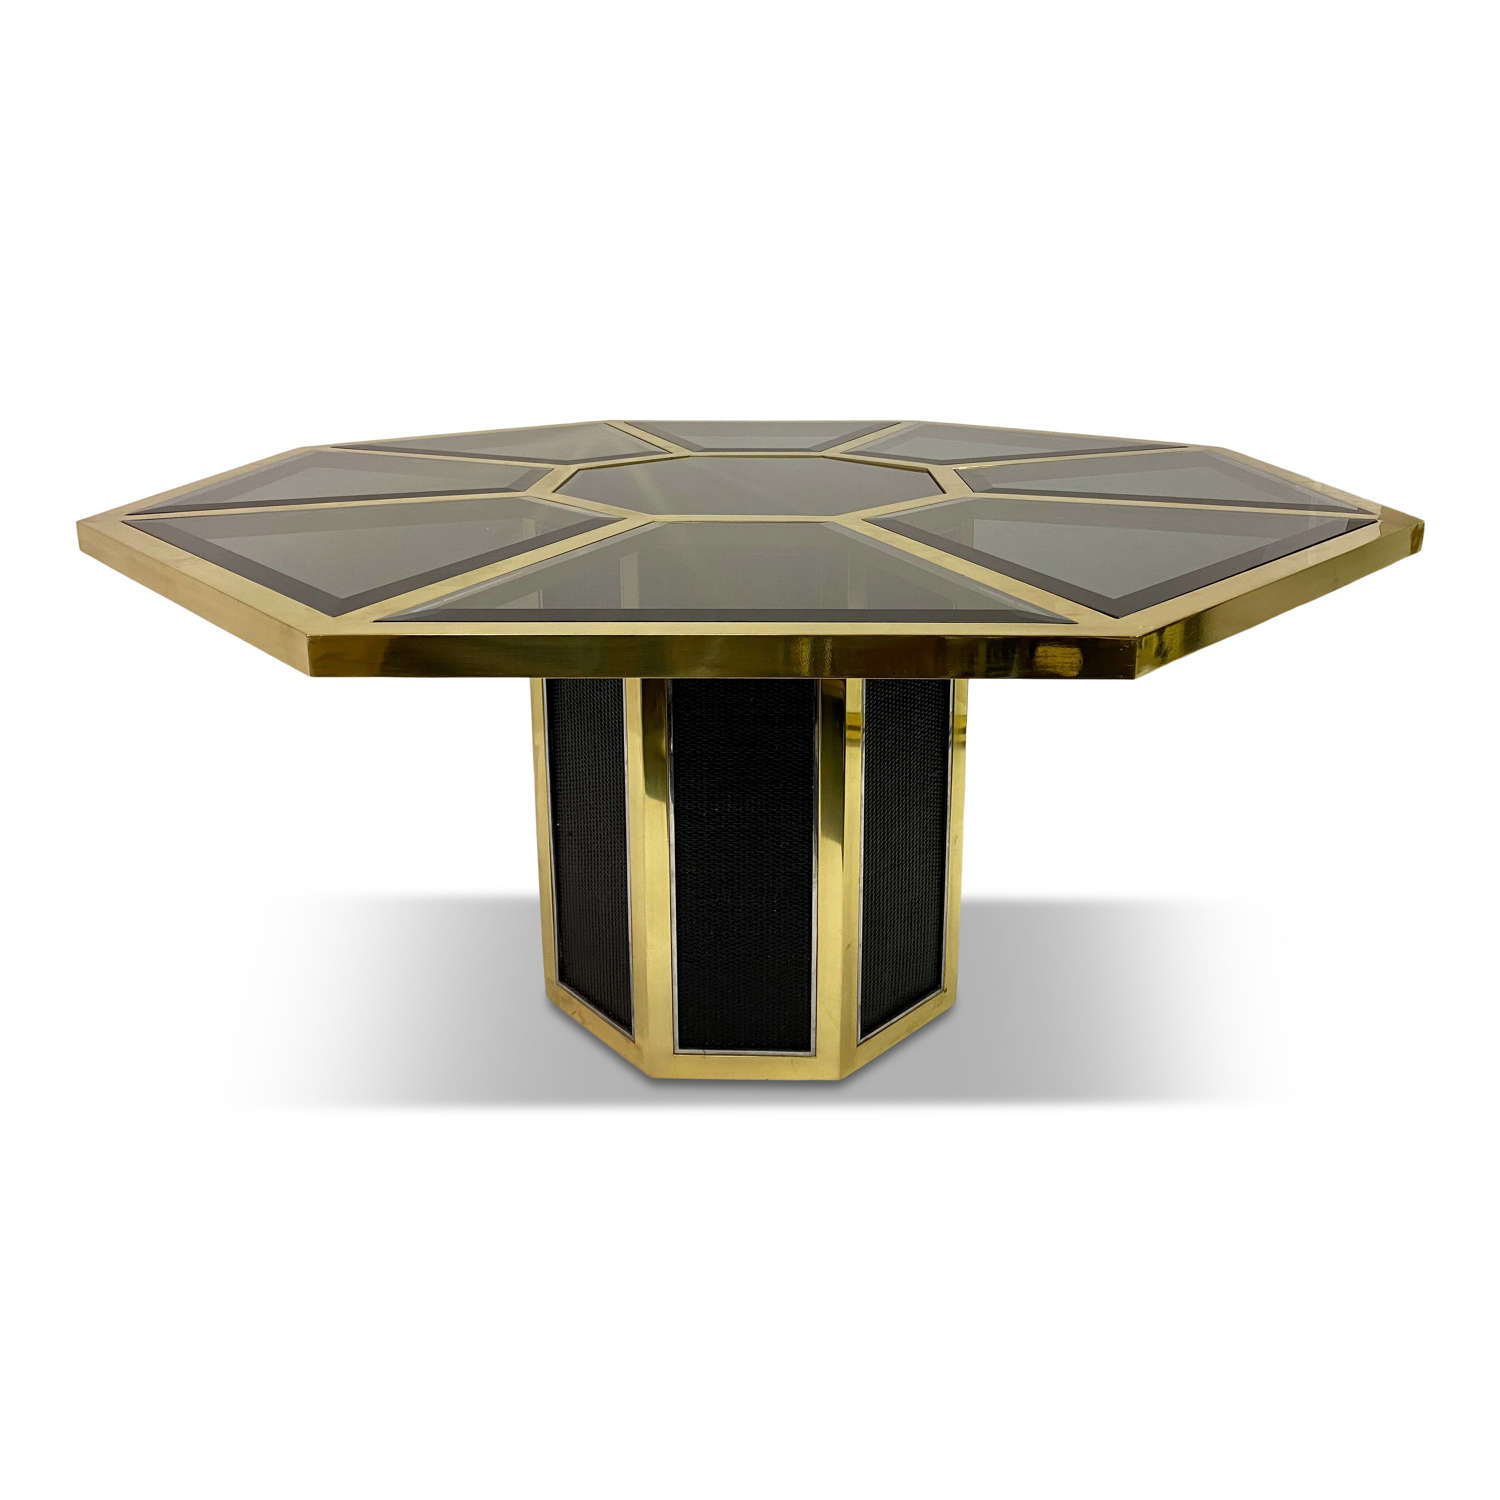 1970s Octagonal Brass and Rattan Dining Table By Romeo Rega for Sabot